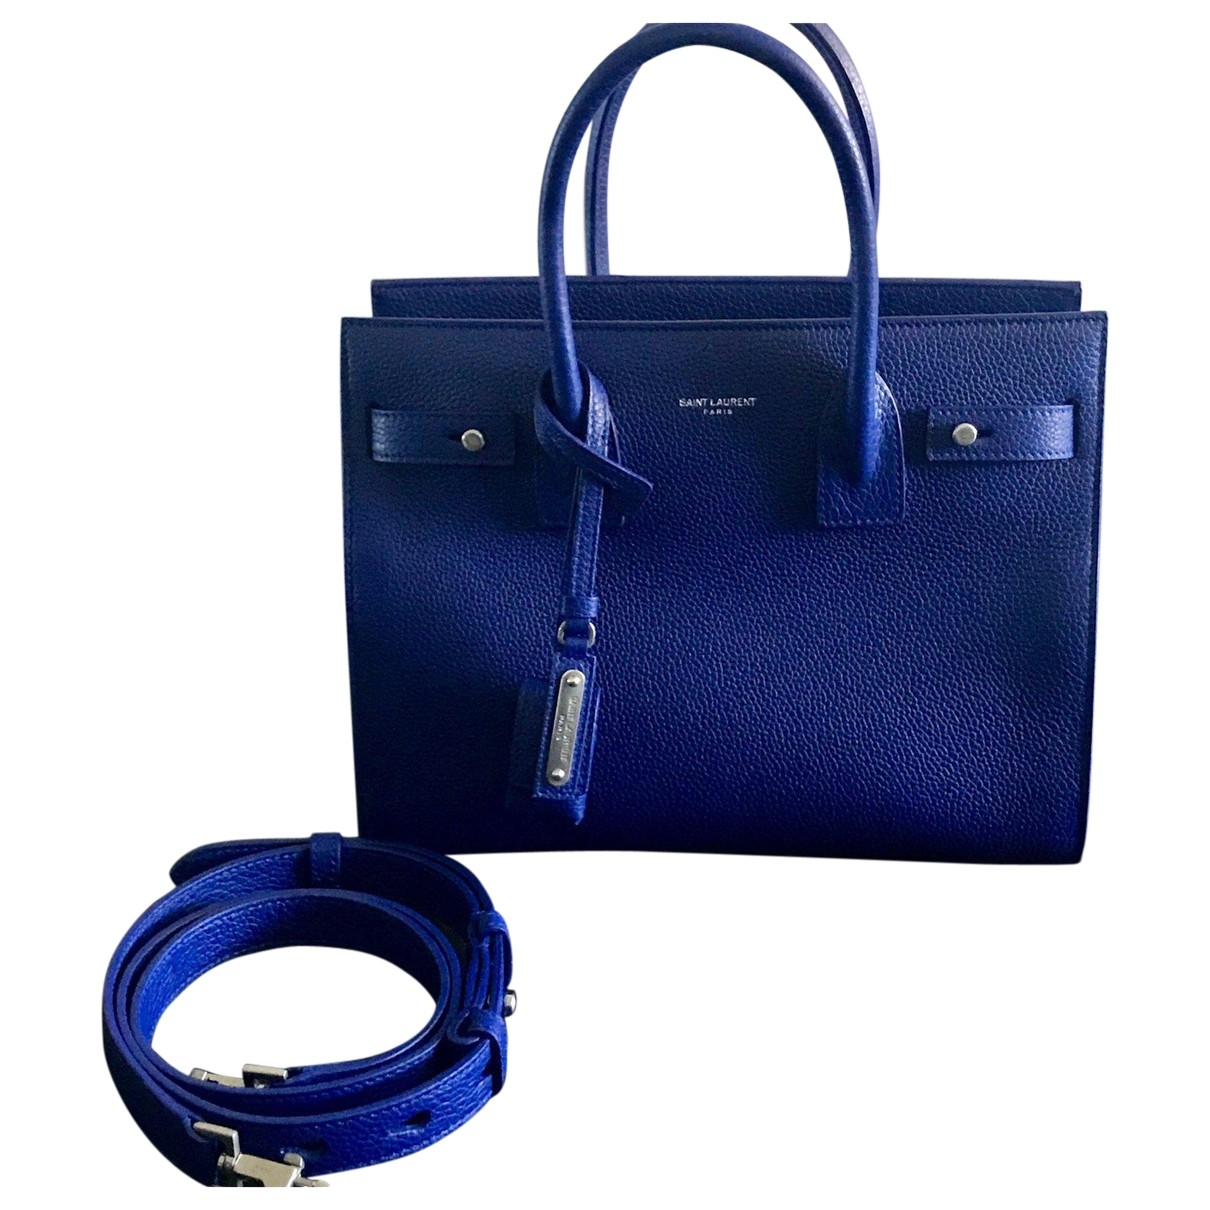 Saint Laurent Sac de Jour Blue Leather handbag for Women \N